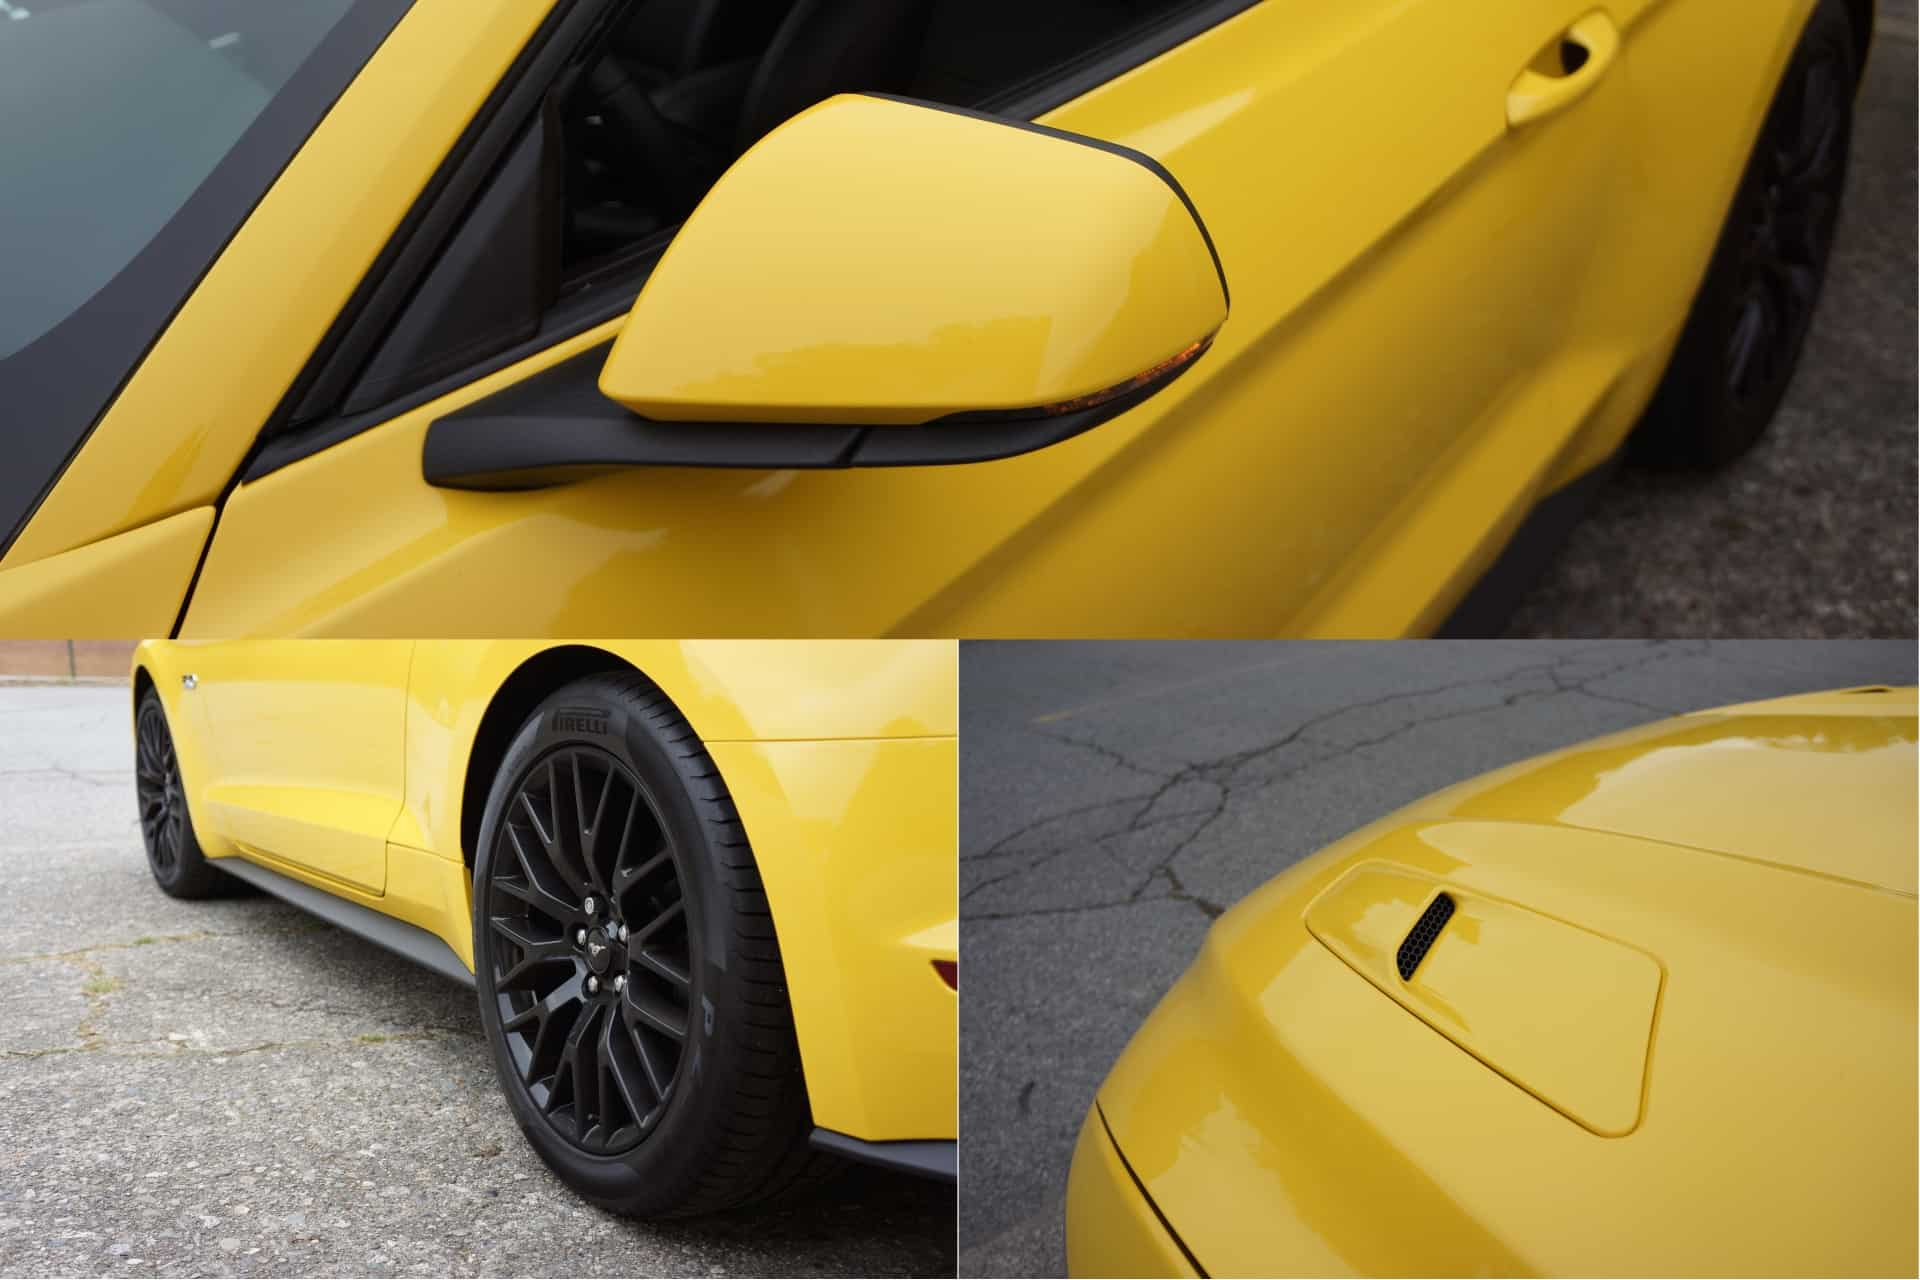 2015_Mustang_exterior_collage